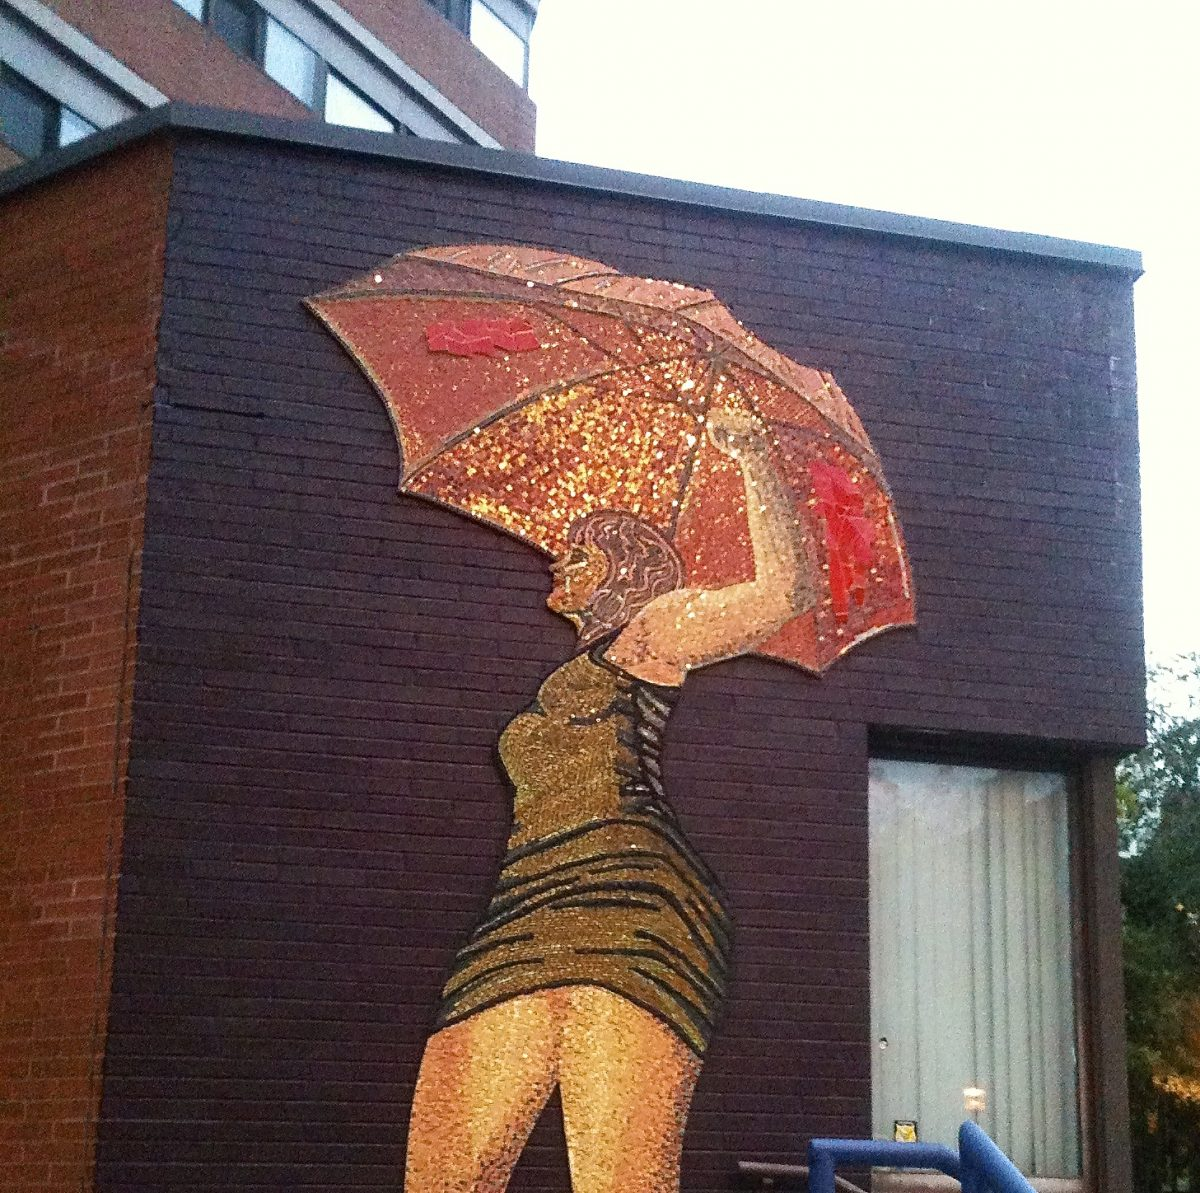 [Image description: A photograph of a mural on a brick wall. The mural shows a woman in a short, tight black dress holding an umbrella, and has one fist raised high]